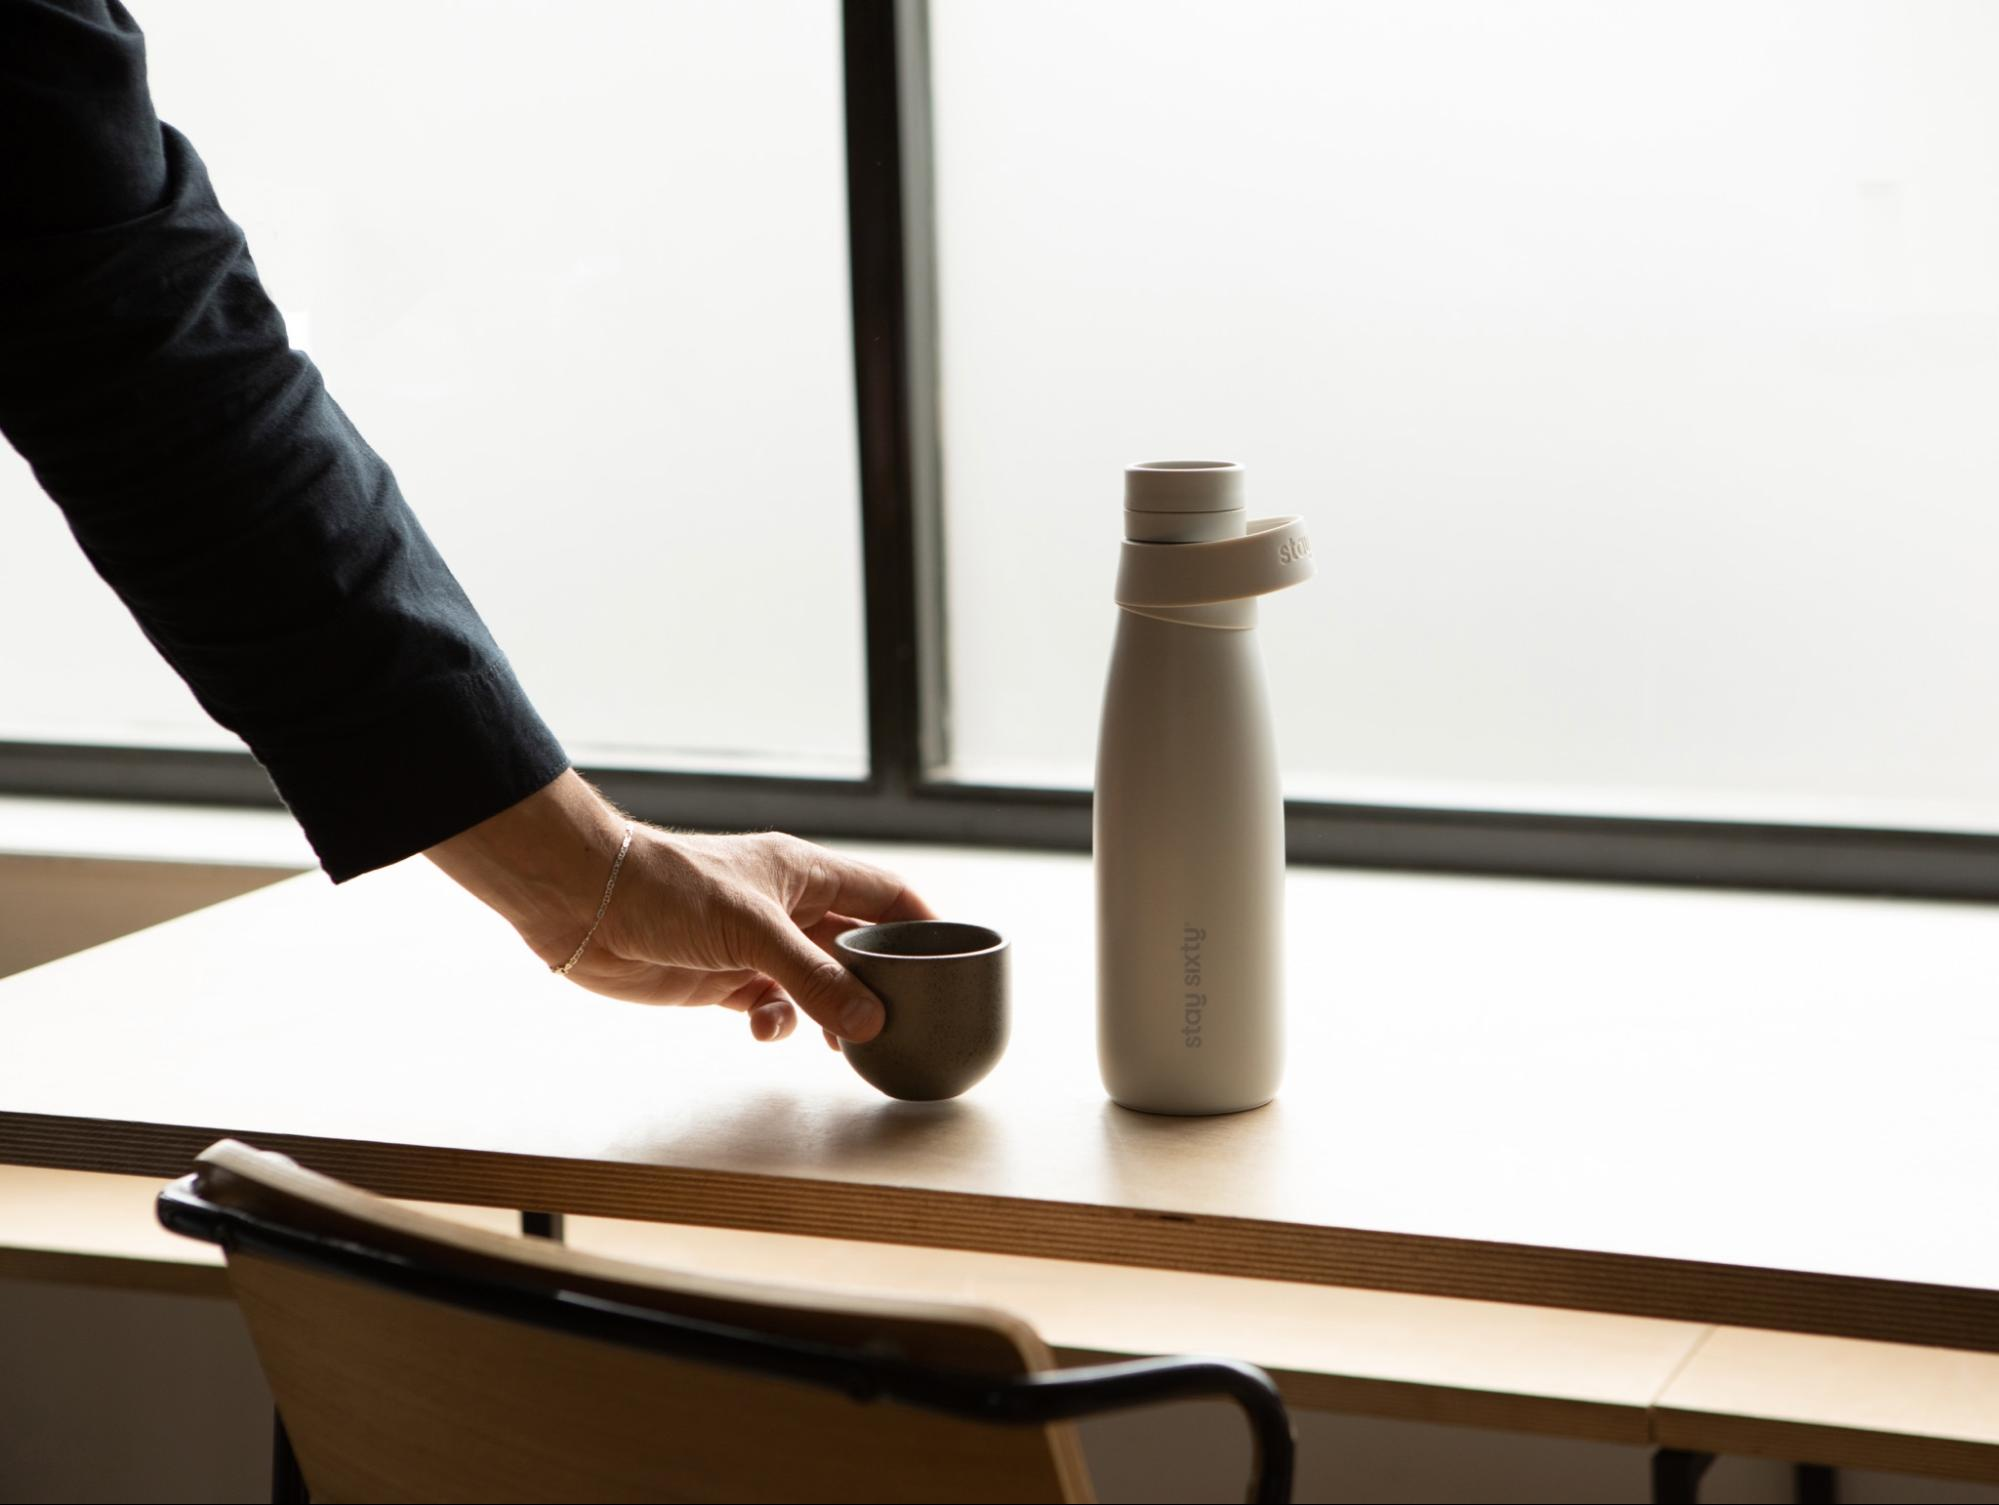 A hand holding a mug backdropped by a stone colored water bottle by Stay Sixty.